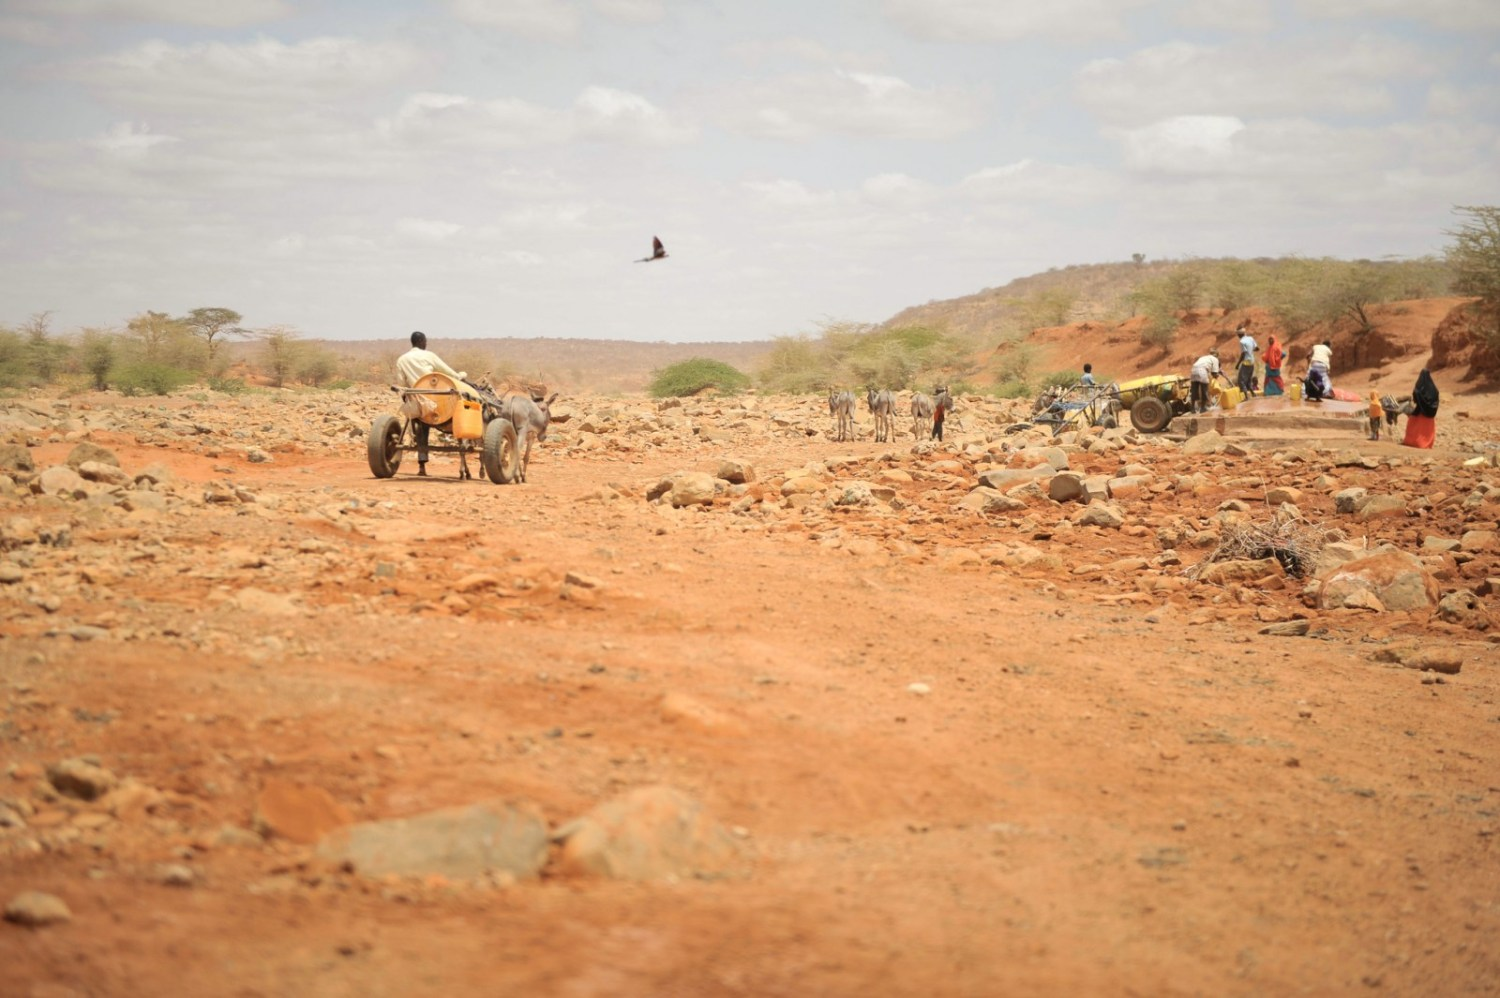 A man walks towards a well with his donkey cart to collect water in Garbahaarey town in the Gedo region of Somalia